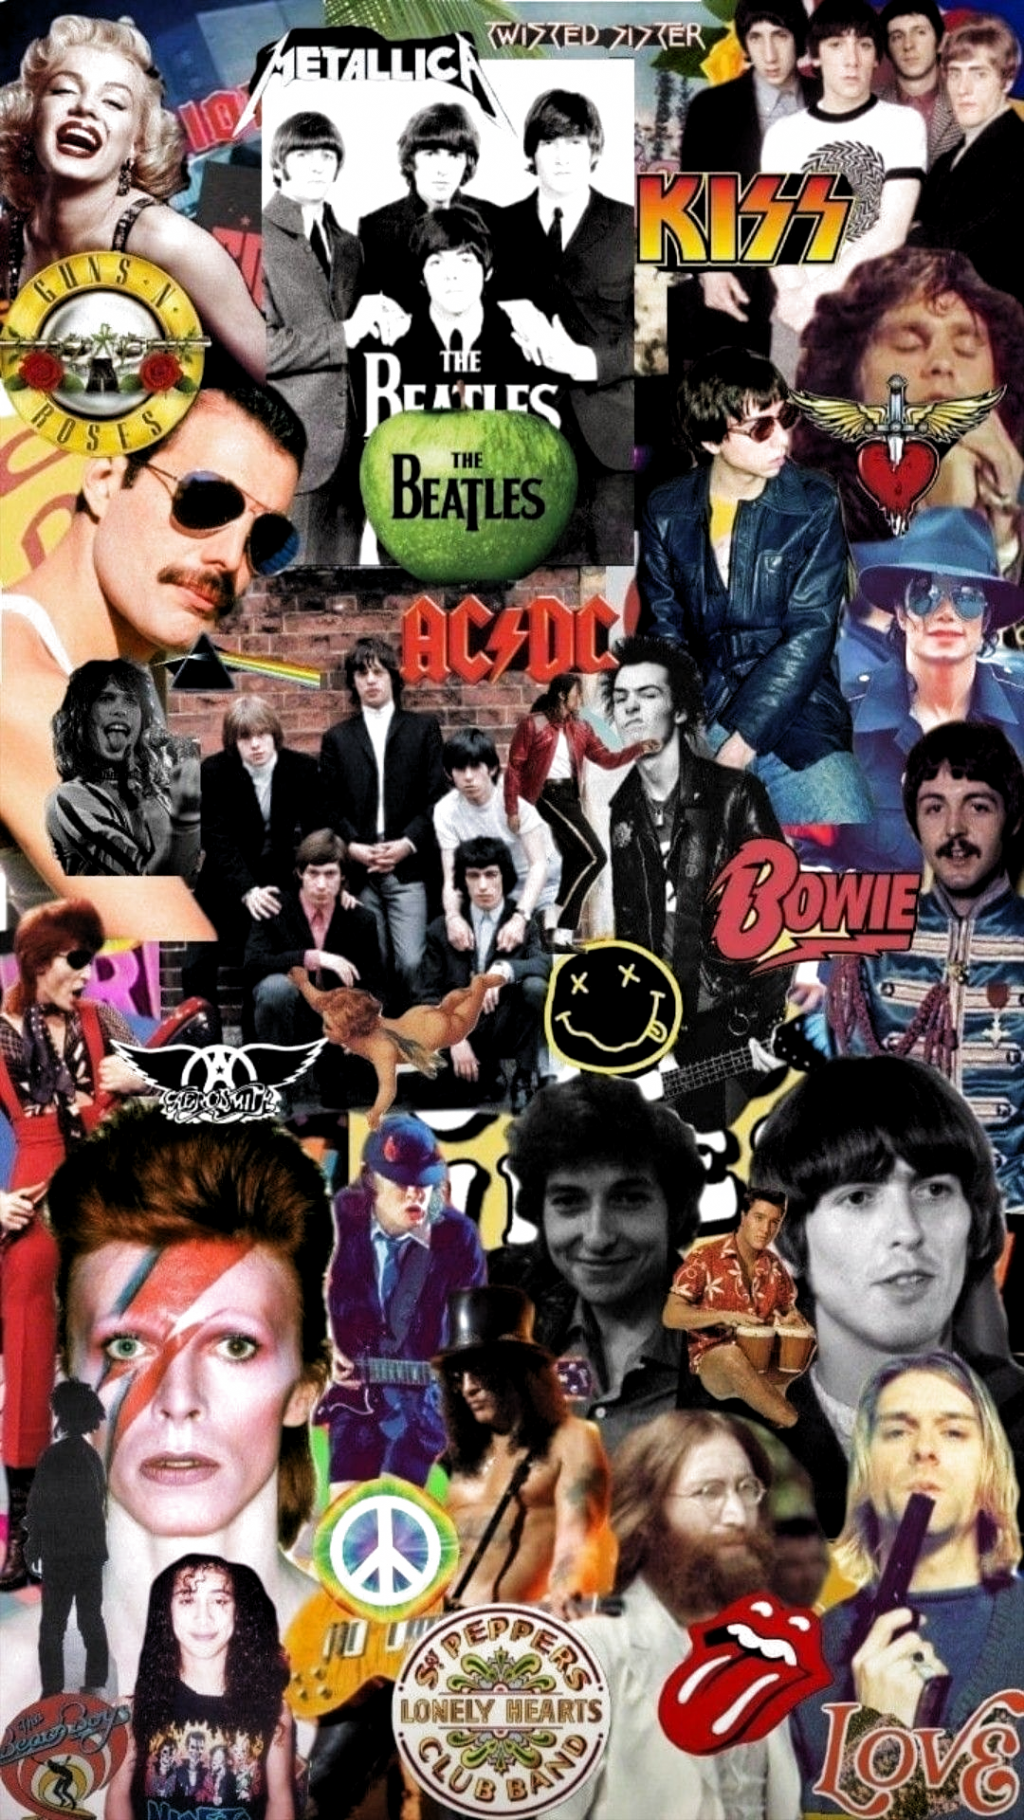 Wallpapers Background Whatsapp Fondowhatsapp In 2020 Beatles Wallpaper Music Collage Retro Wallpaper